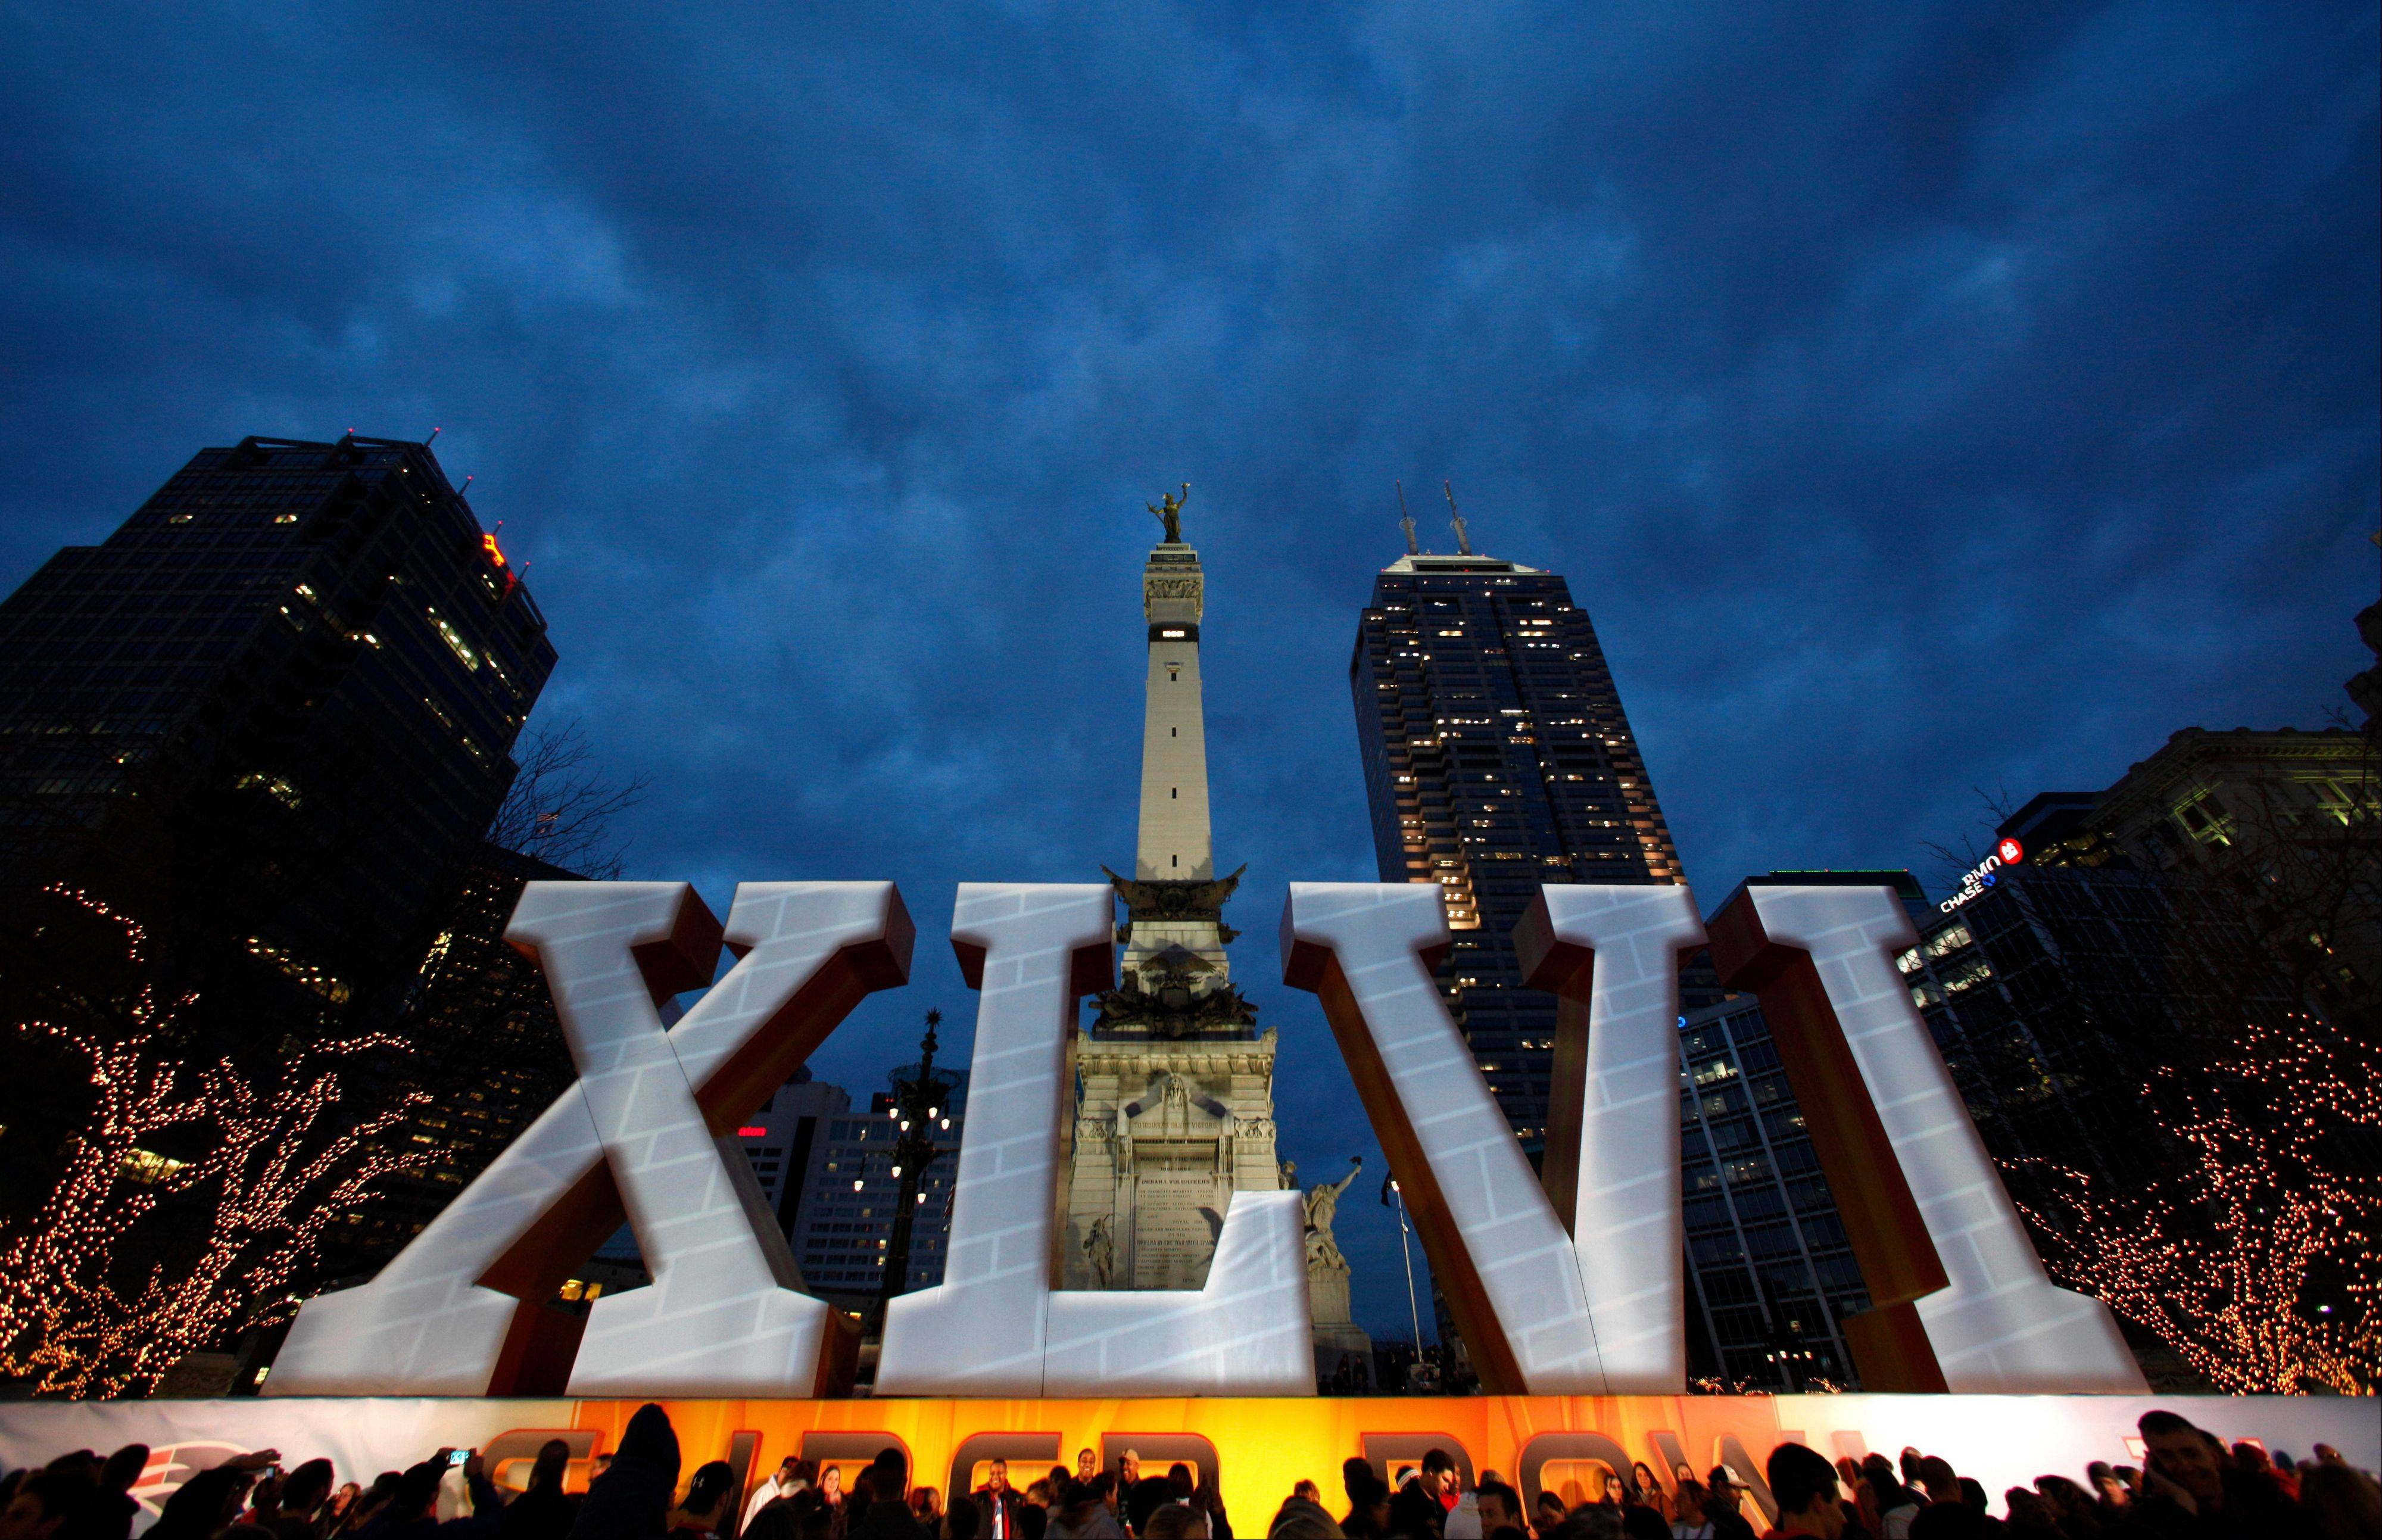 People crowd around the Super Bowl XLVI sign Friday on Monument Circle in Indianapolis. The New England Patriots are scheduled to face the New York Giants in NFL football's Super Bowl XLVI on Sunday.